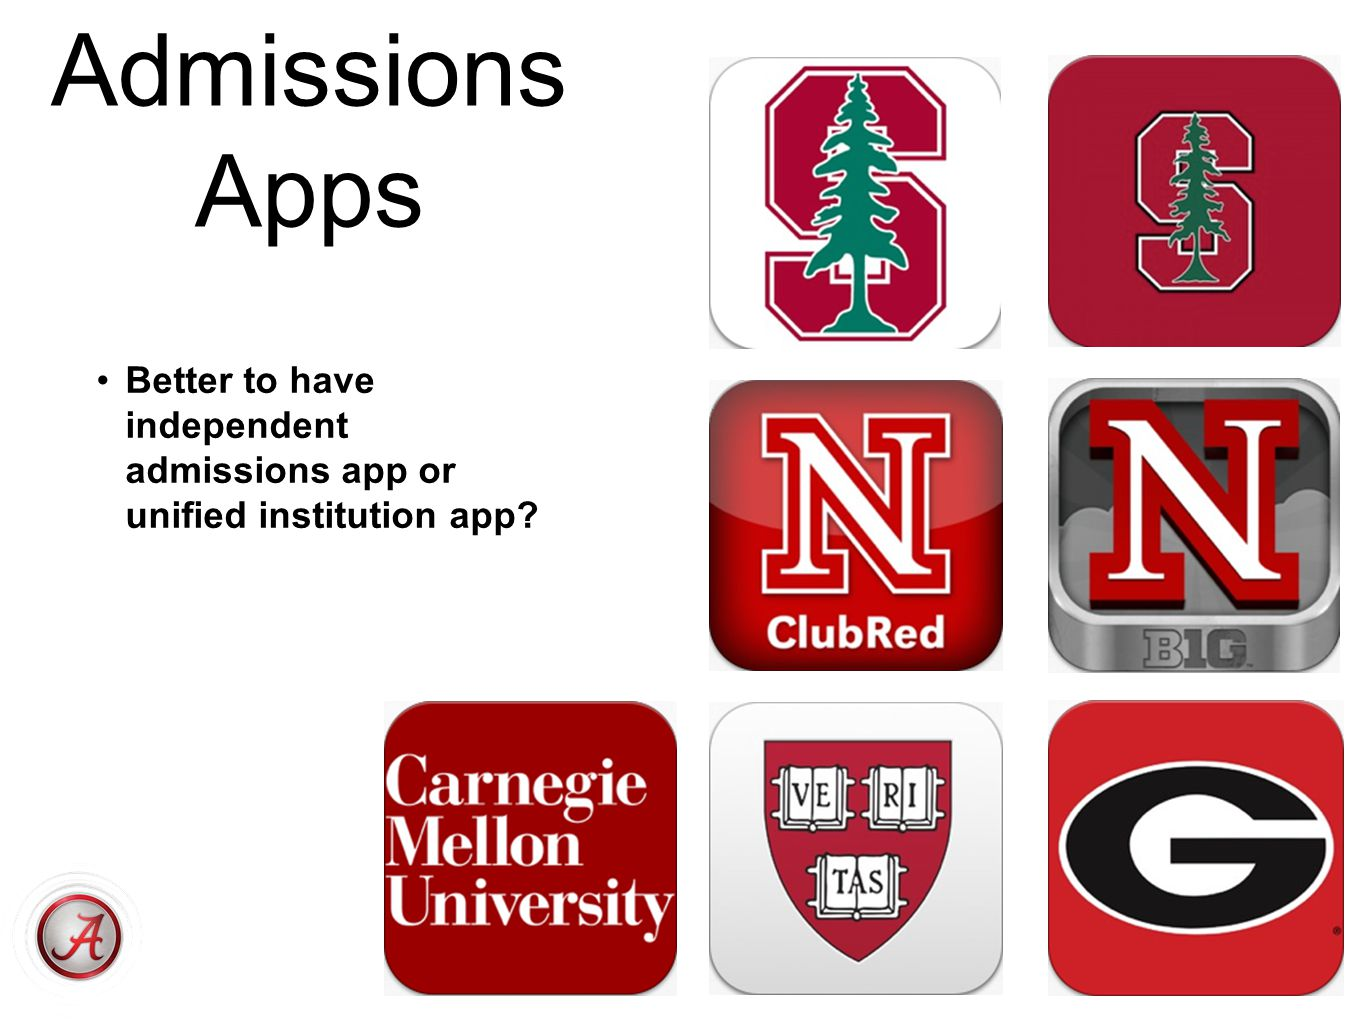 Admissions Apps Better to have independent admissions app or unified institution app